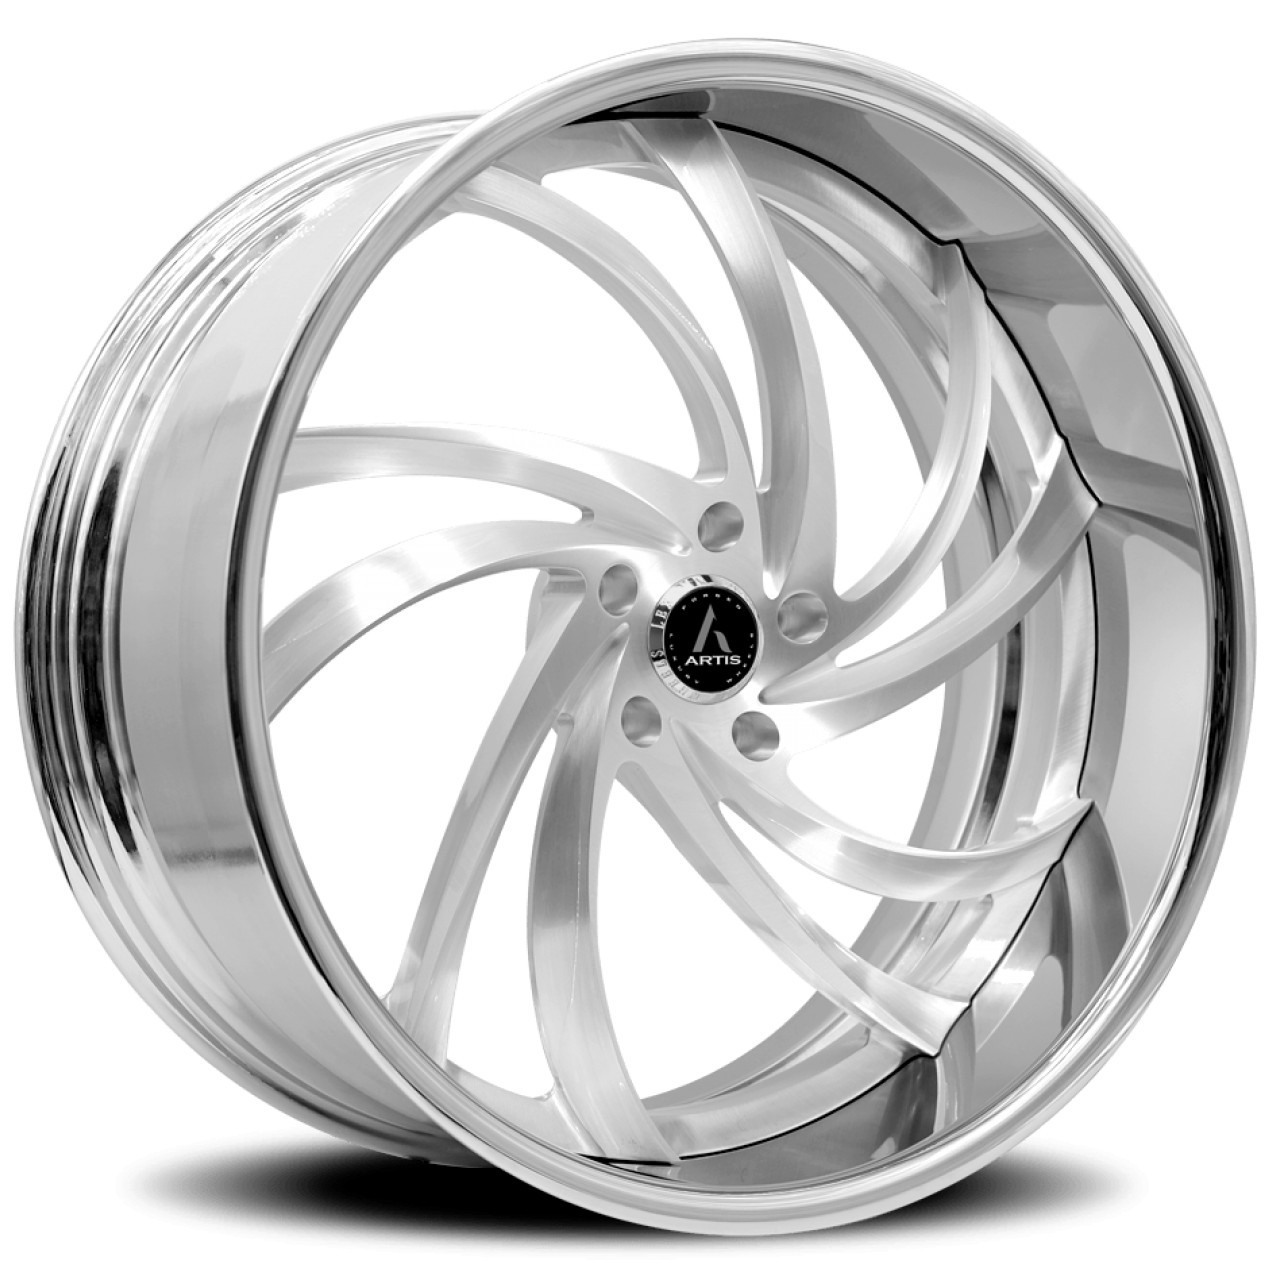 Artis Twister forged wheels